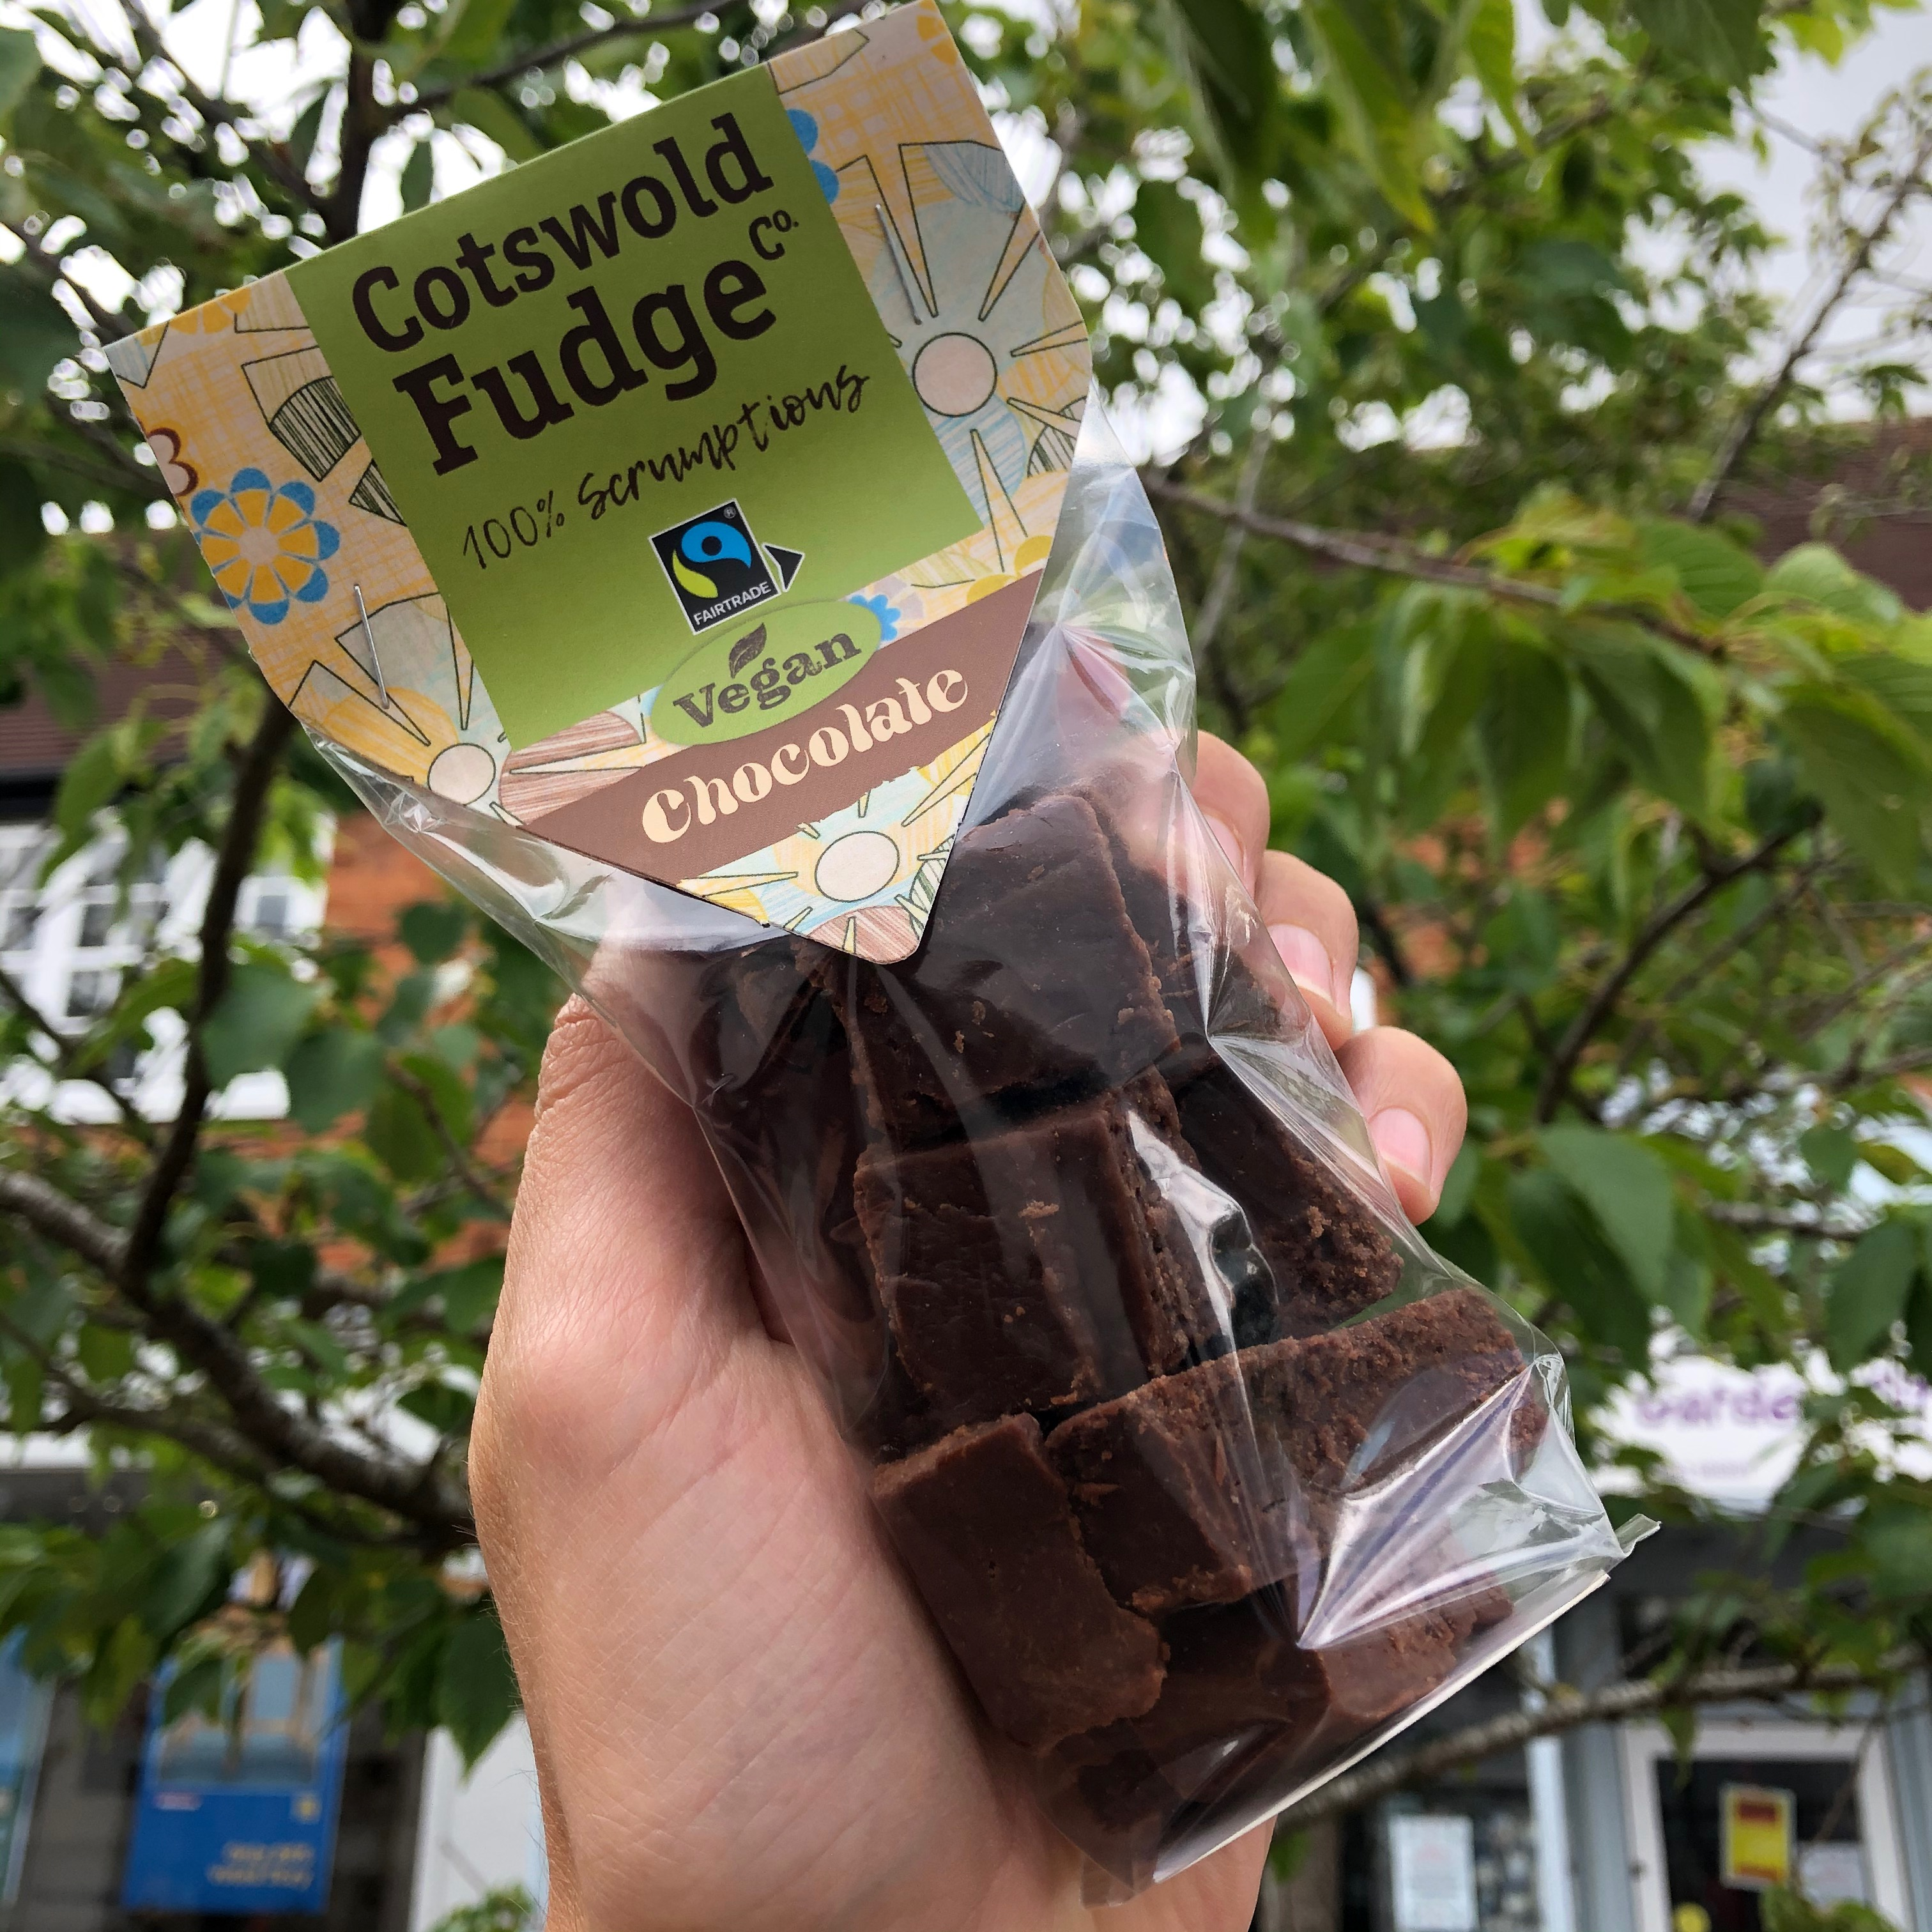 Cotswold Fudge Co - Vegan Chocolate Fudge